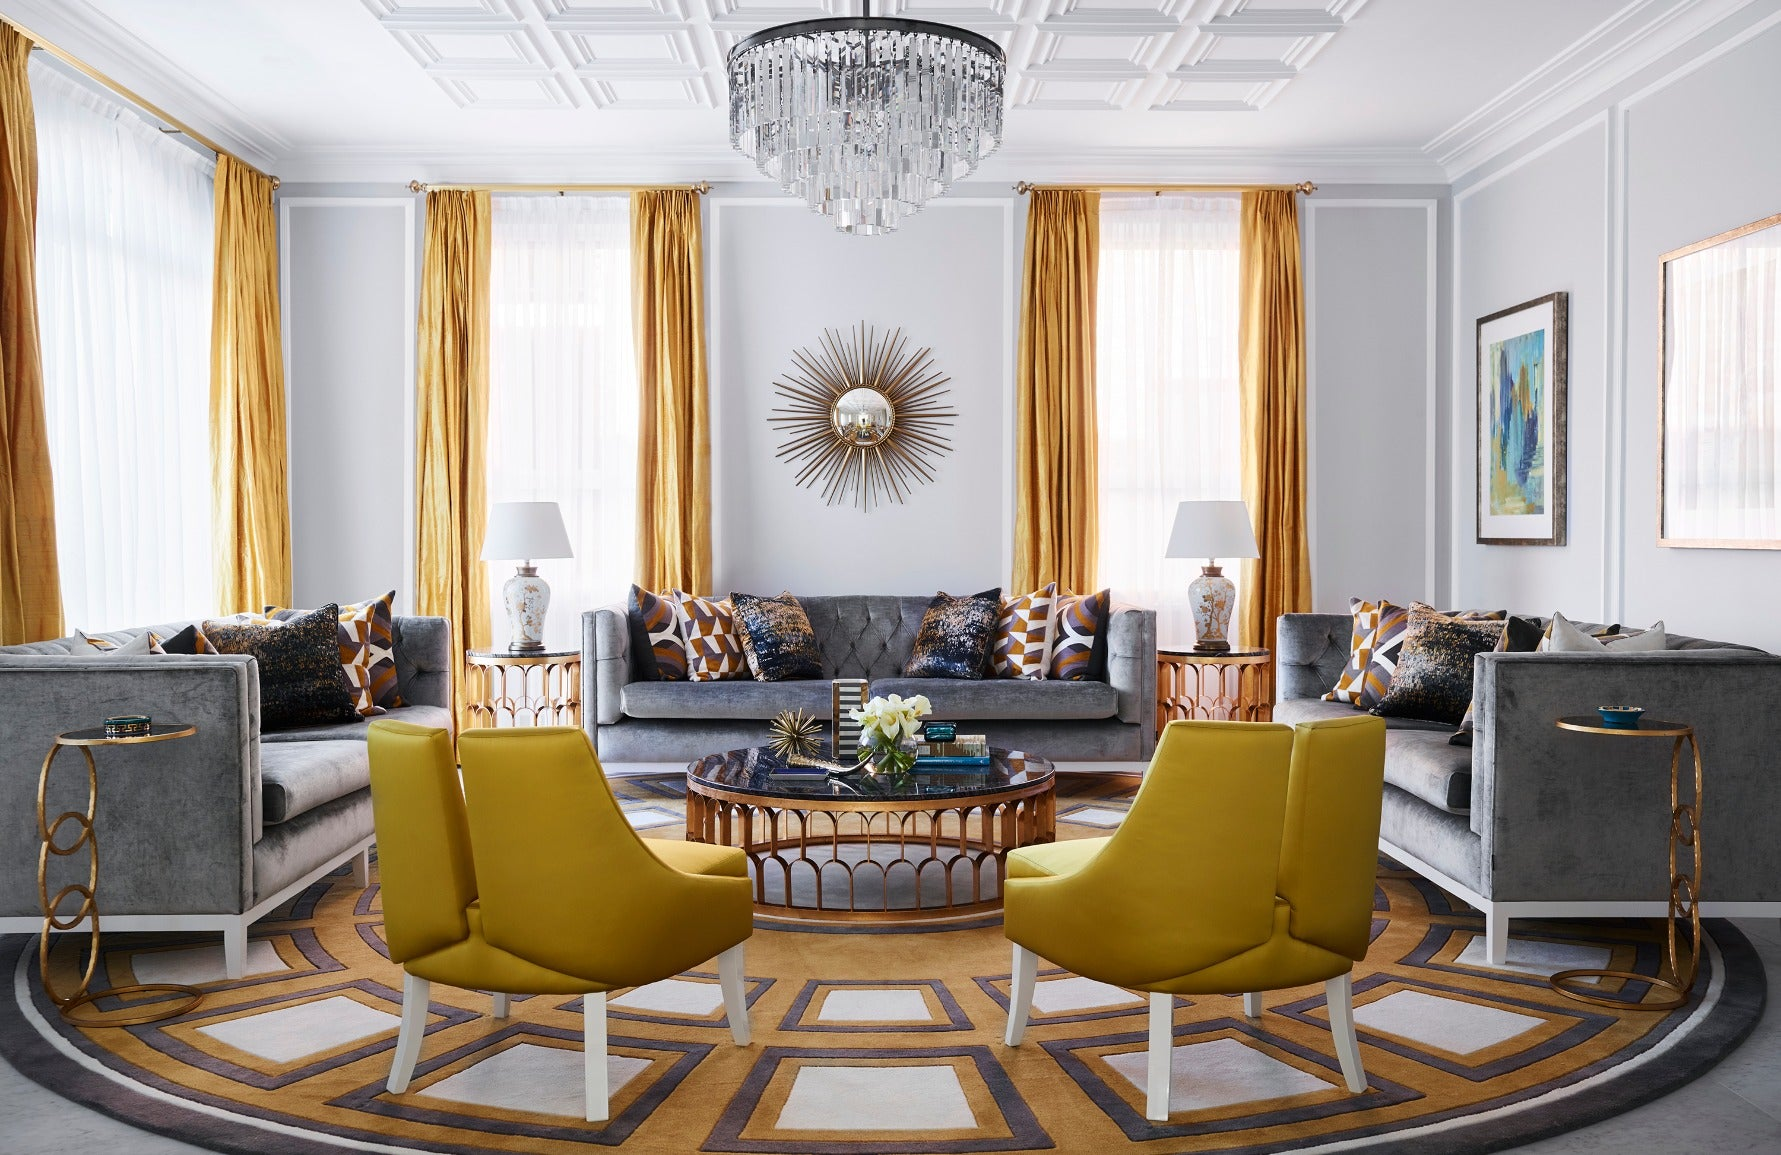 Best Yellow Living Room Ideas | Yellow Living Room Chair | Decorating with Yellow | LuxDeco.com Style Guide